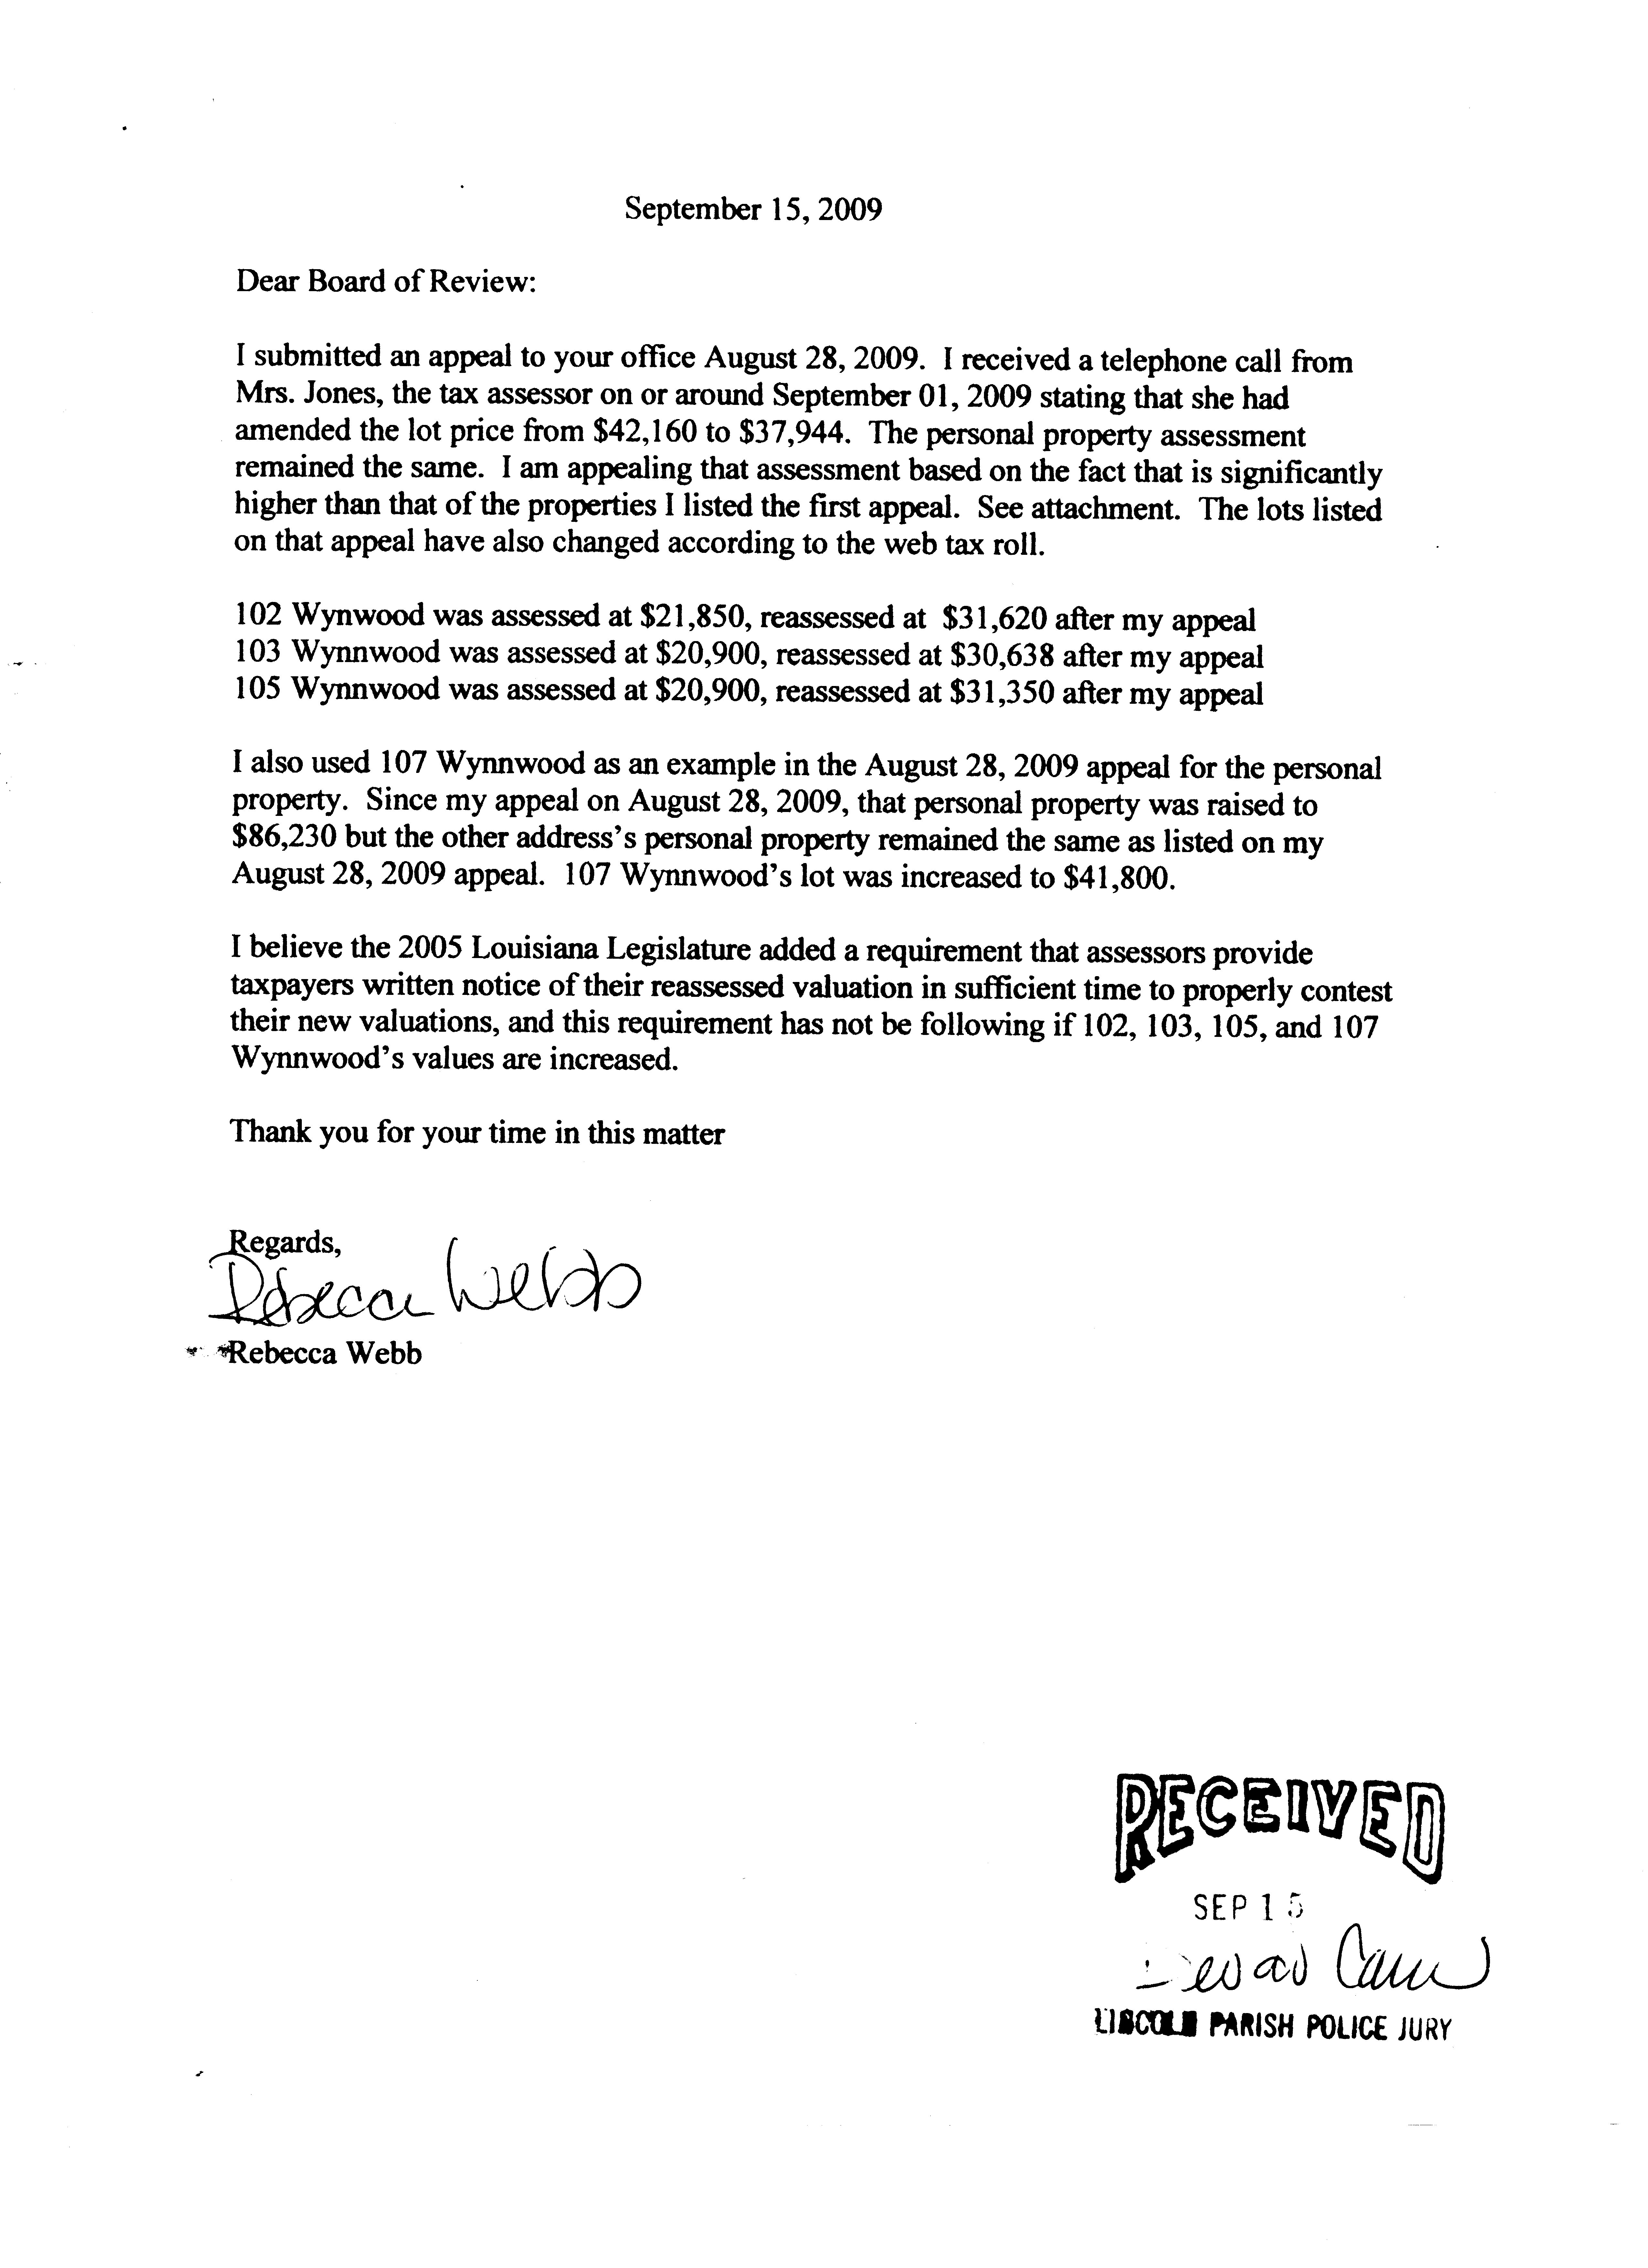 Tax Protest Letter Template - How to Write A Letter Appeal Sample Letter format formal